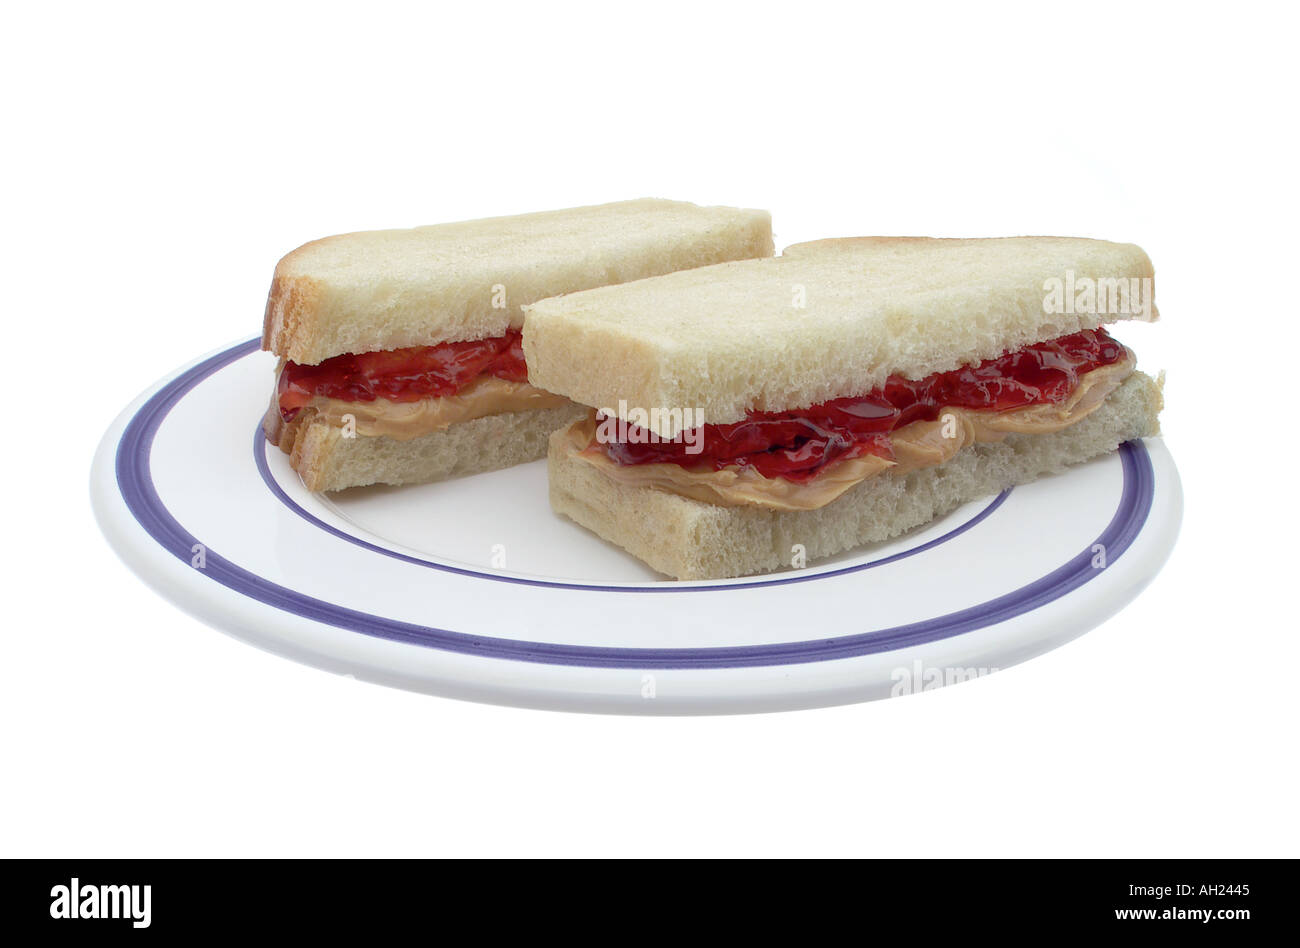 Peanut butter and jelly sandwich silhouetted on white background - Stock Image